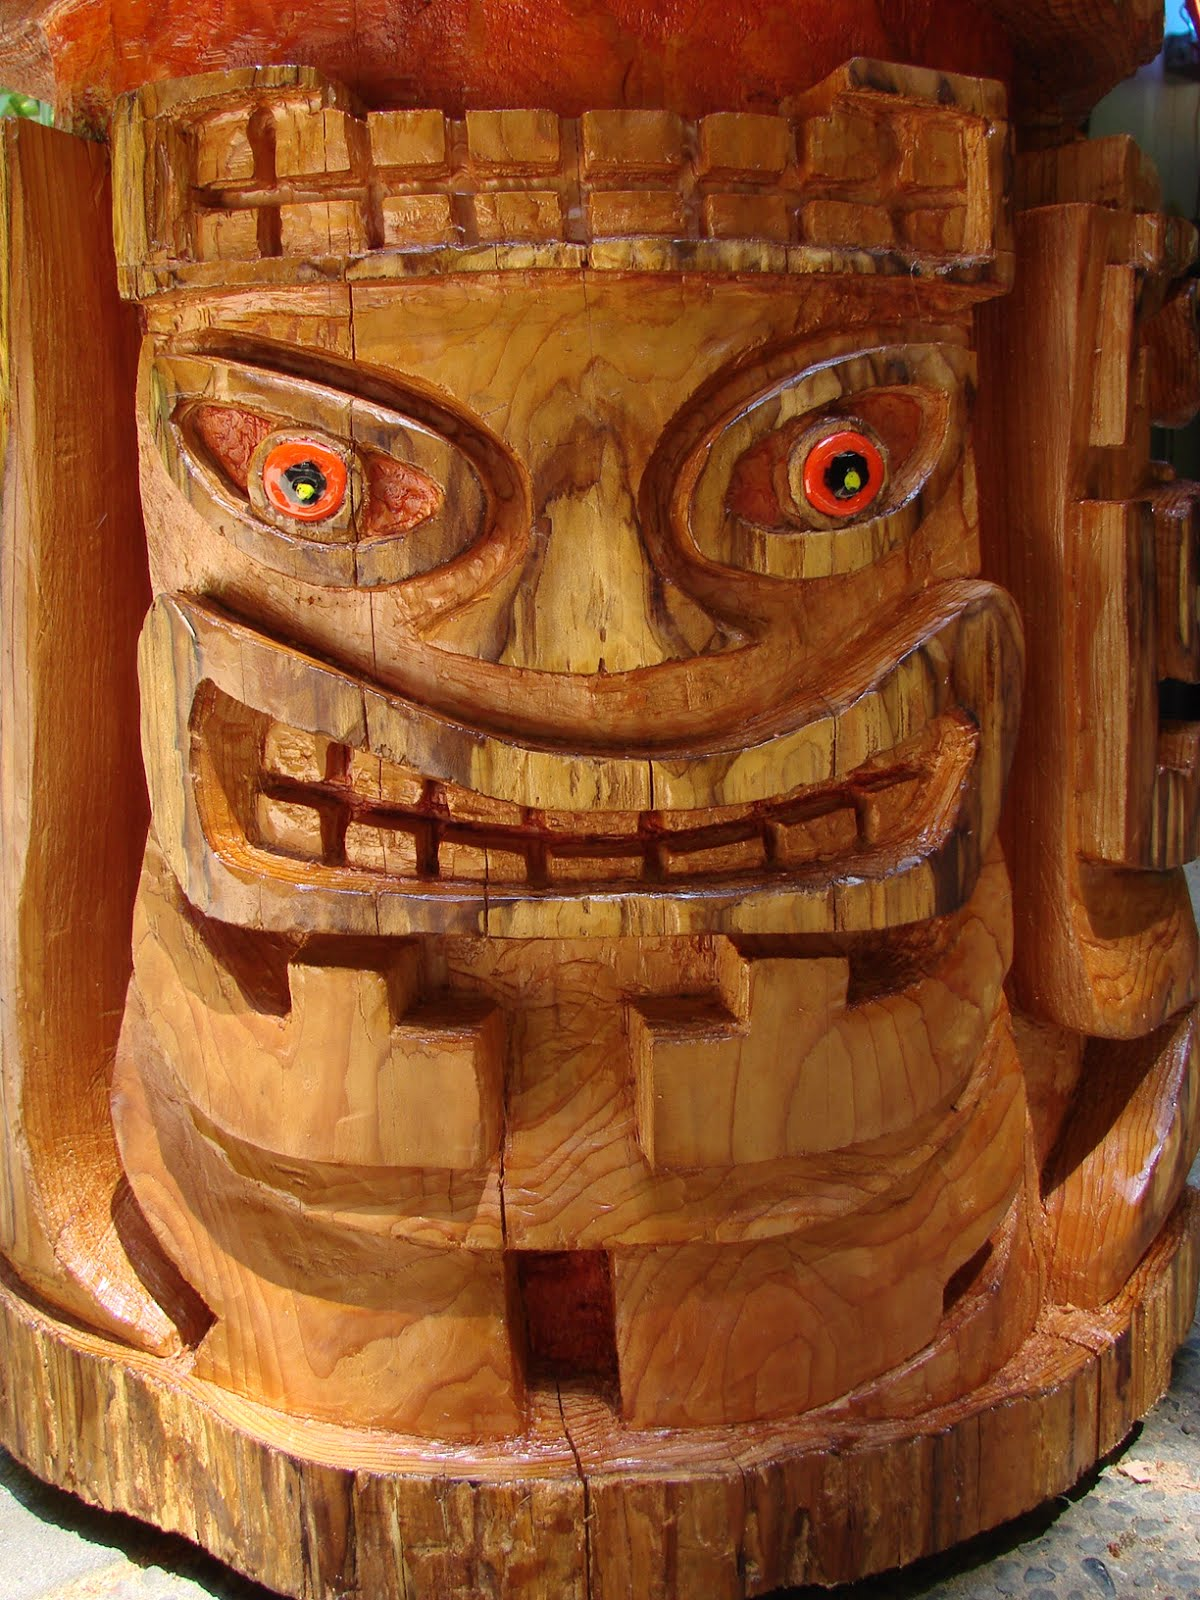 I hope to see some of you at Tiki Kon or the following week in the very local Gresham Artwalk.